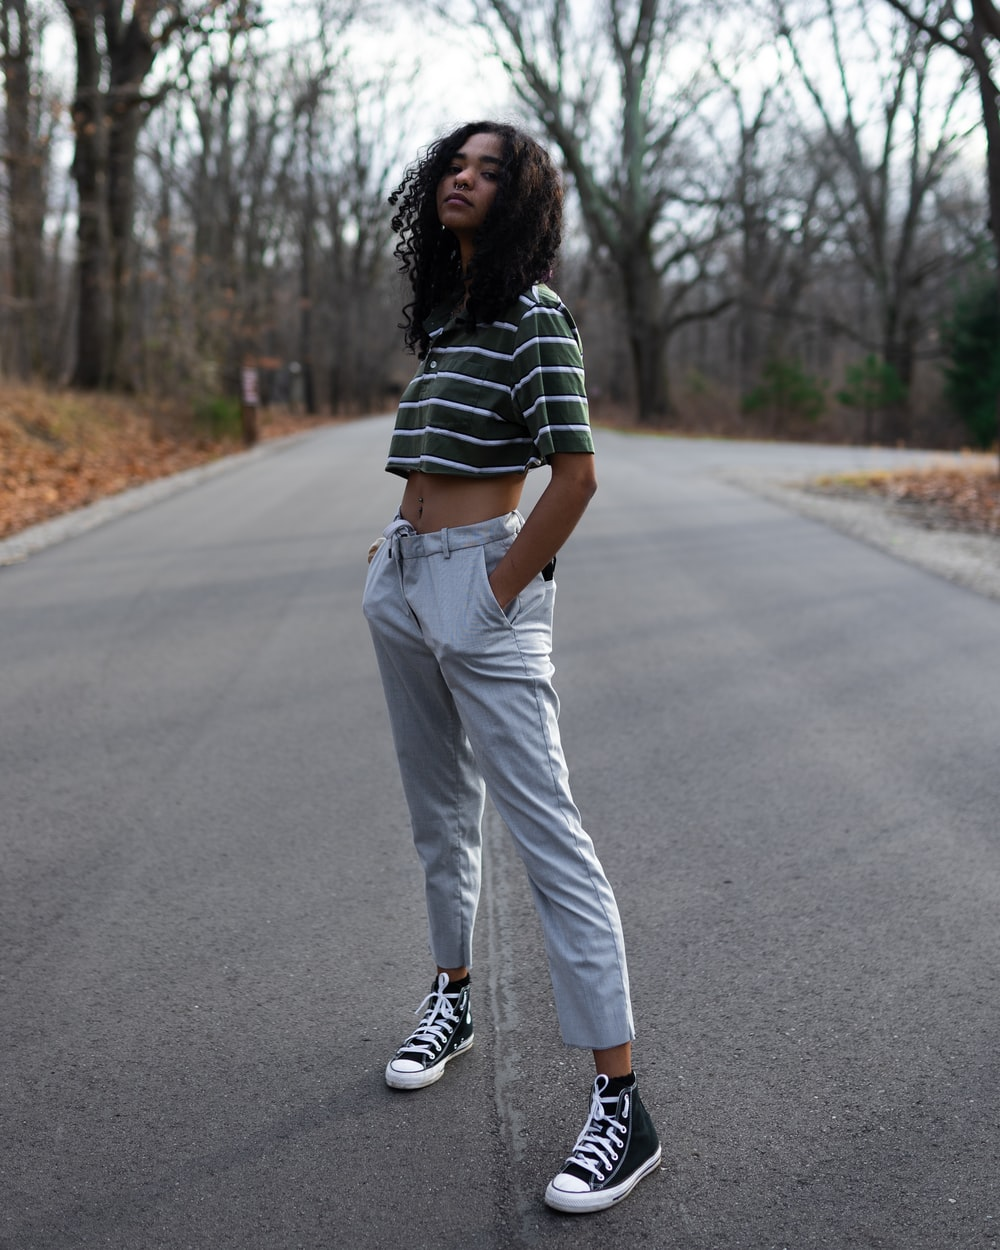 woman in black and white stripe shirt and white pants walking on road during daytime